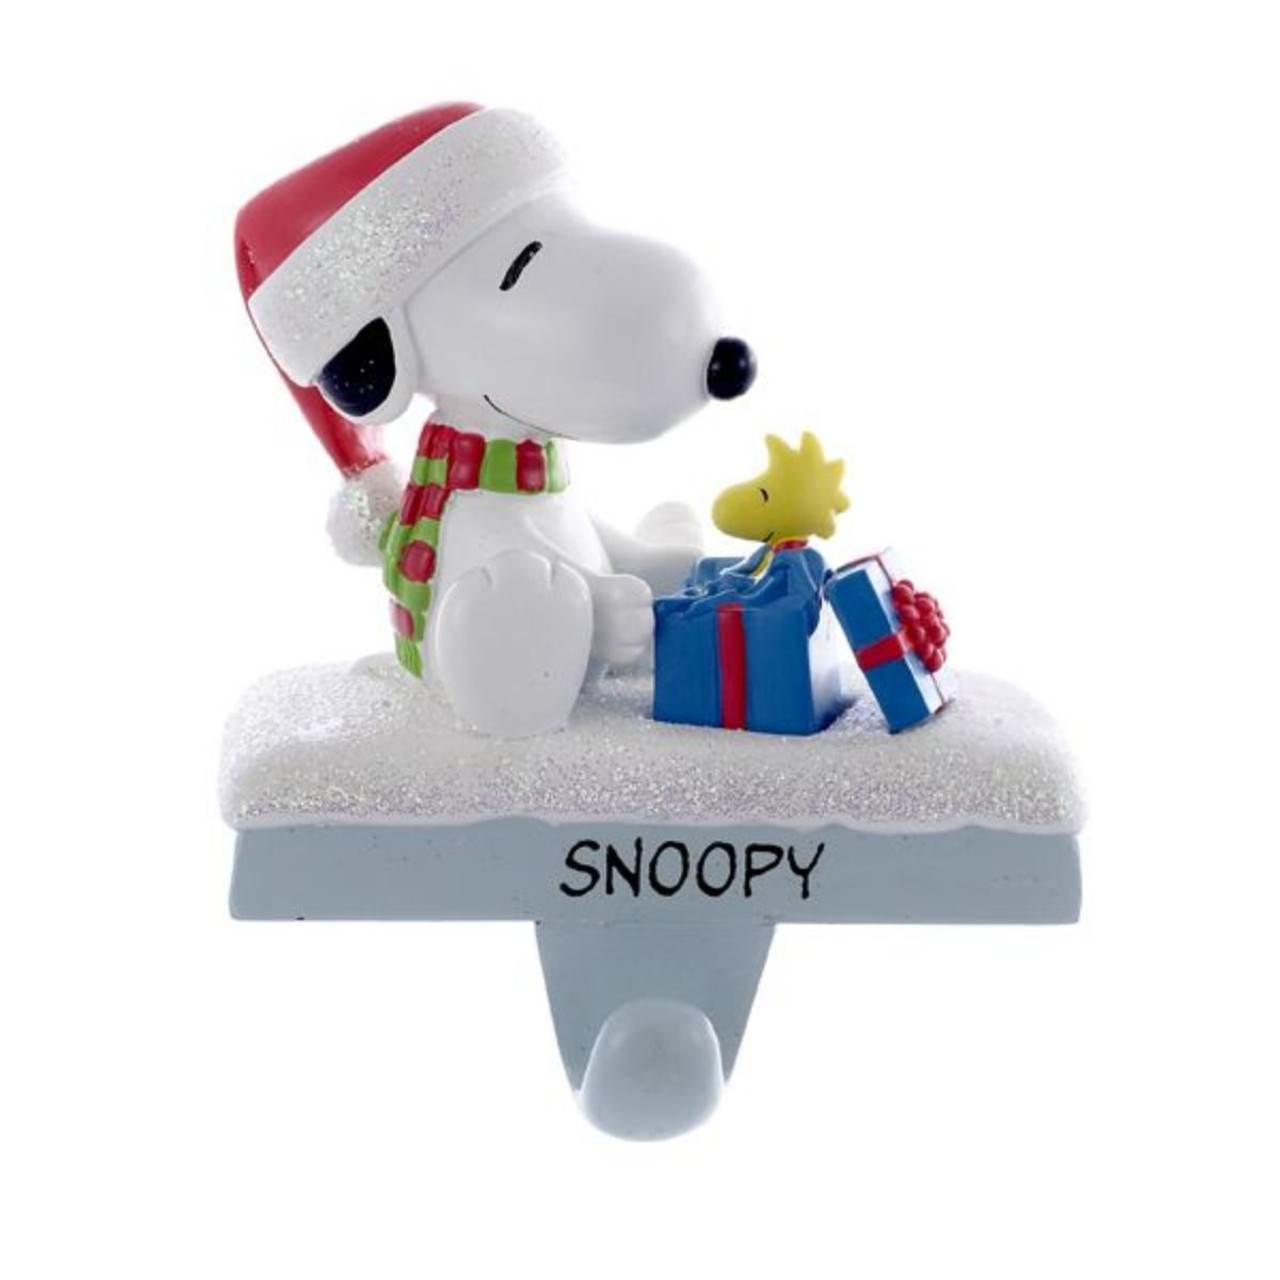 45 peanuts snoopy and woodstock present christmas stocking holder 31367354 - Snoopy Christmas Stocking